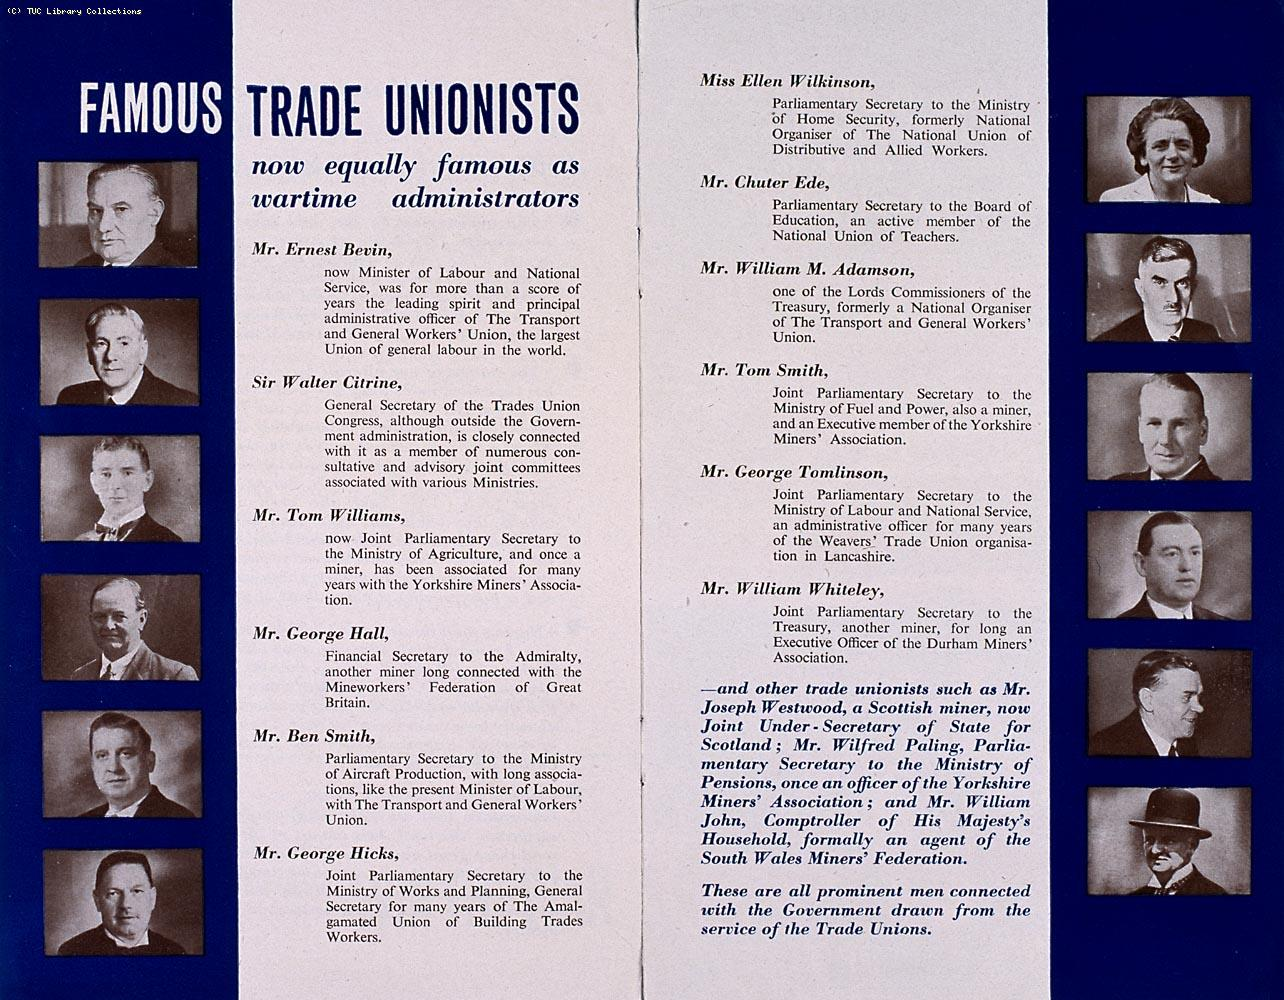 'The trade unionist and the war', 1943